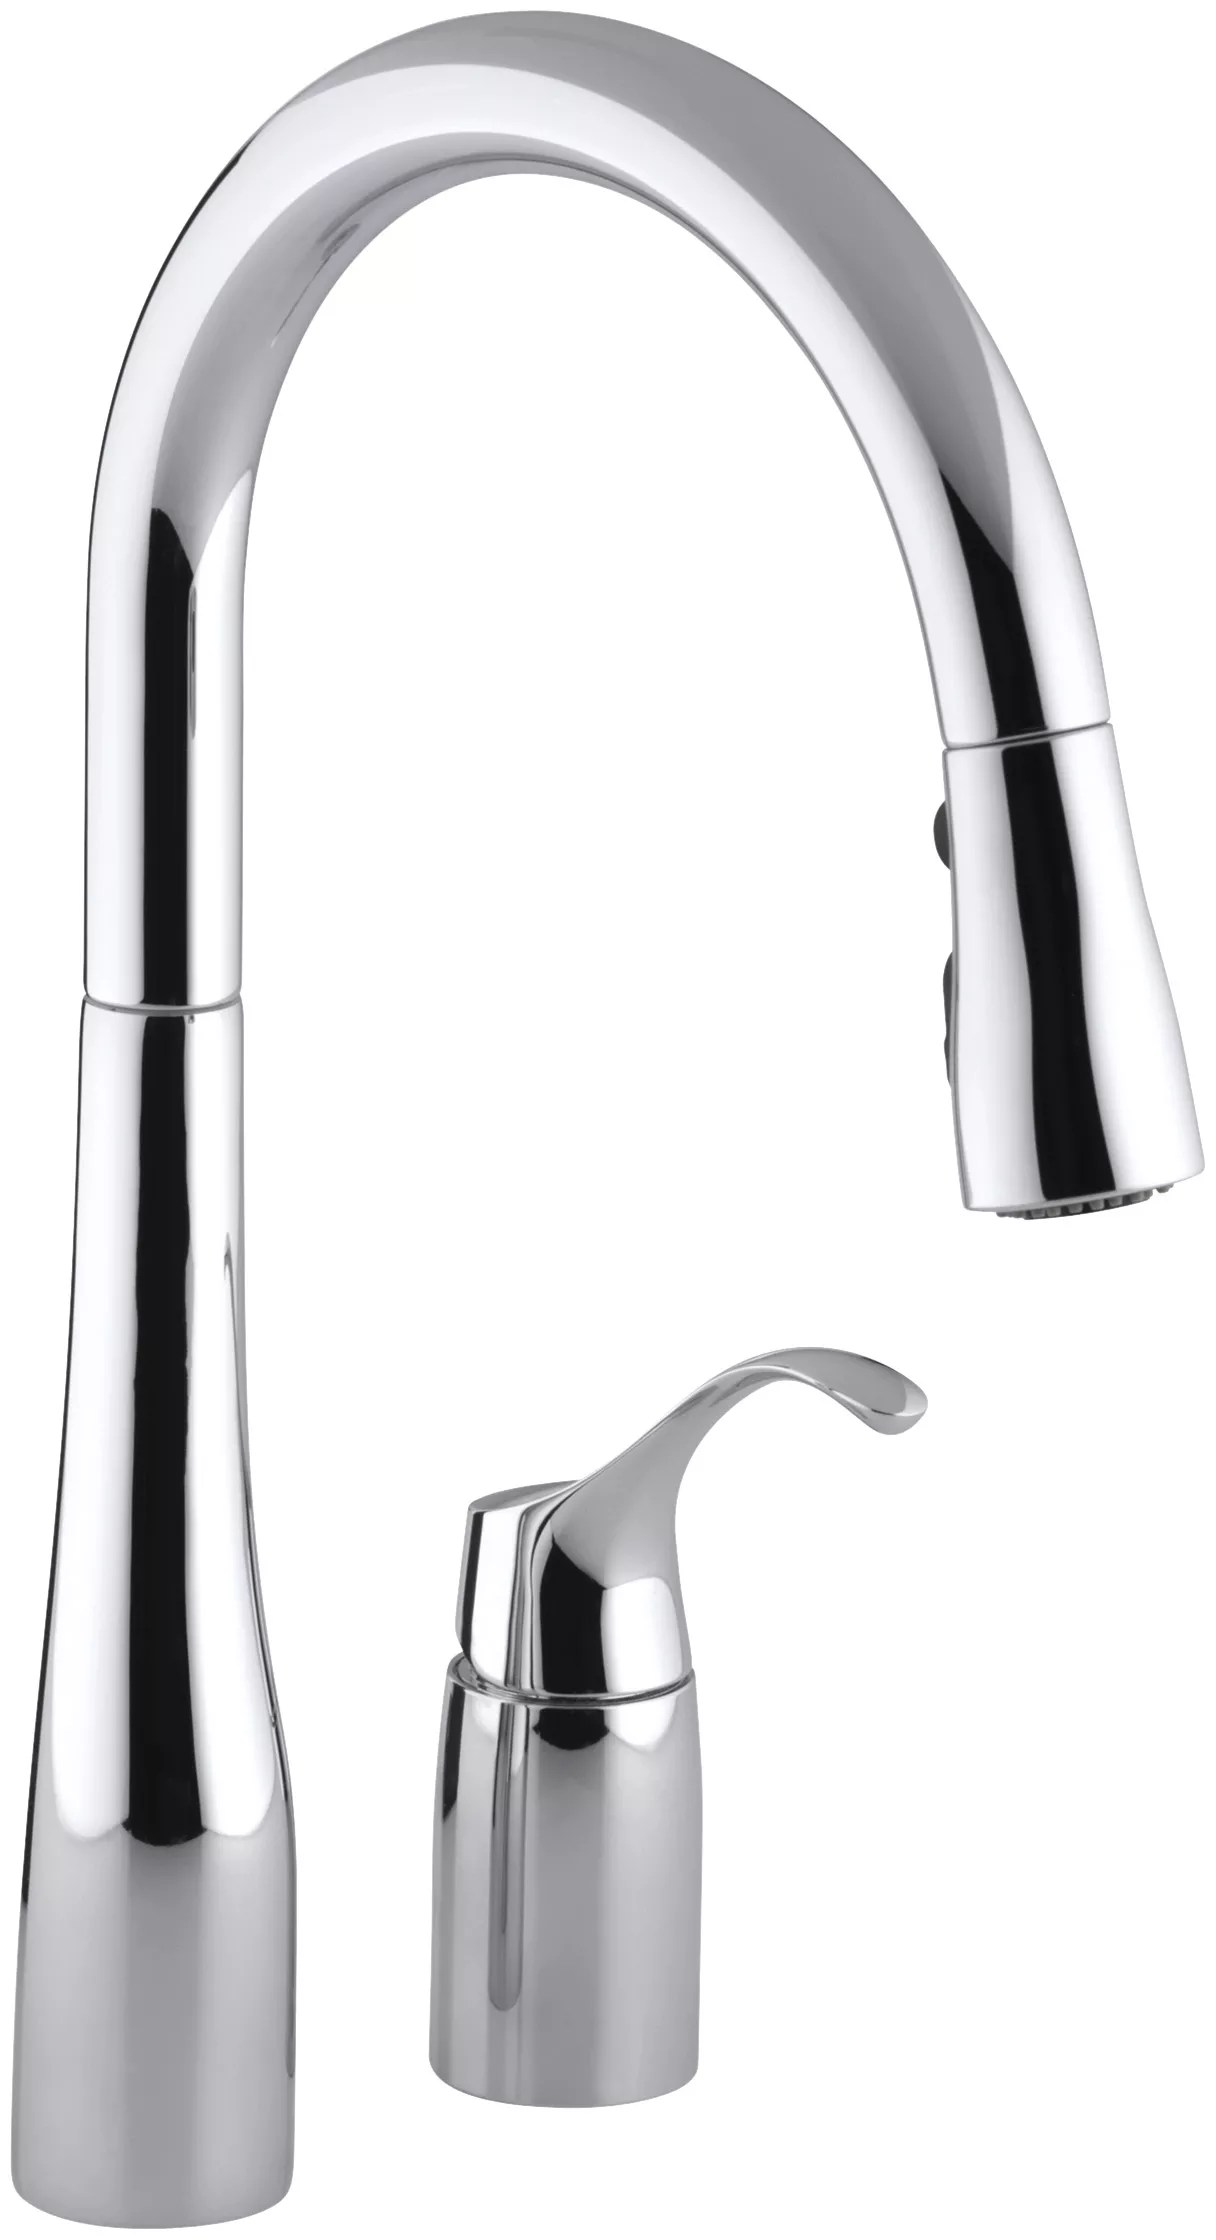 kohler kitchen faucet ninja system pulse bl201 k 647 cp polished chrome simplice two hole sink with 16 1 8 pull down swing spout docknetik magnetic docking